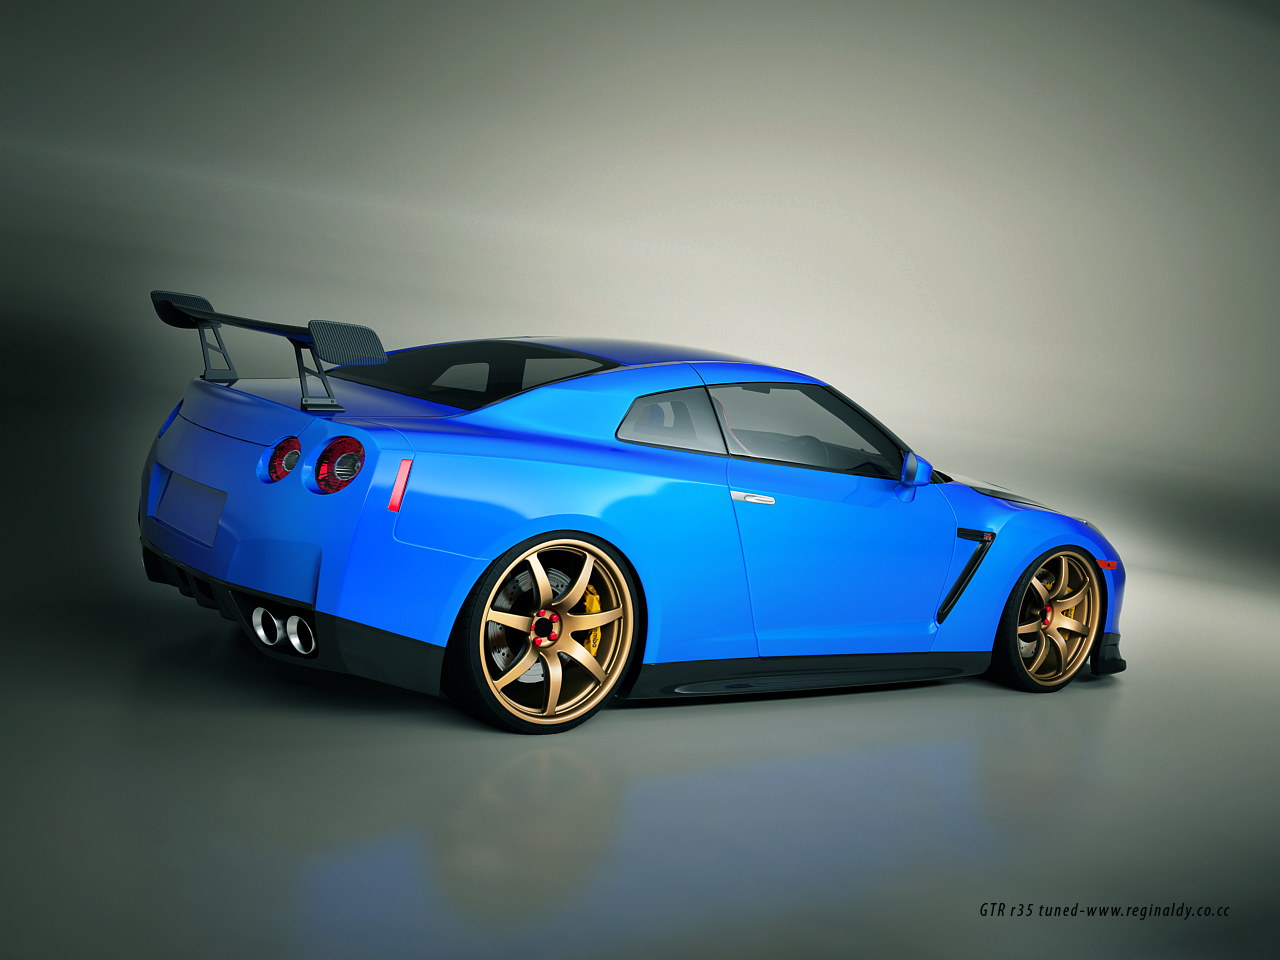 nissan skyline gtr r35 tuned 1 by 3dmanipulasi on deviantart. Black Bedroom Furniture Sets. Home Design Ideas